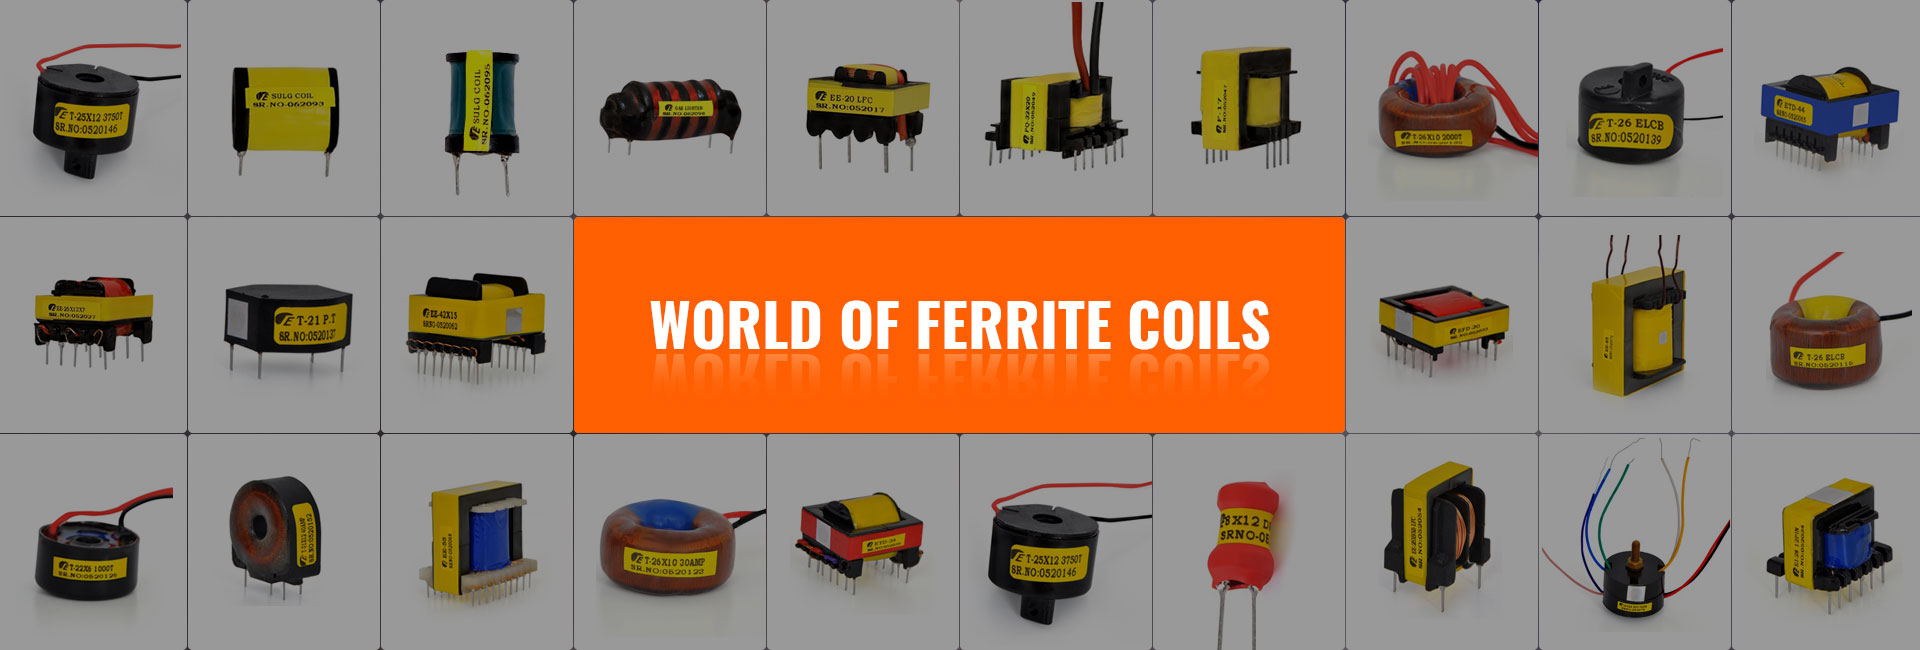 Shah Electronics - World Of Ferrite Coils